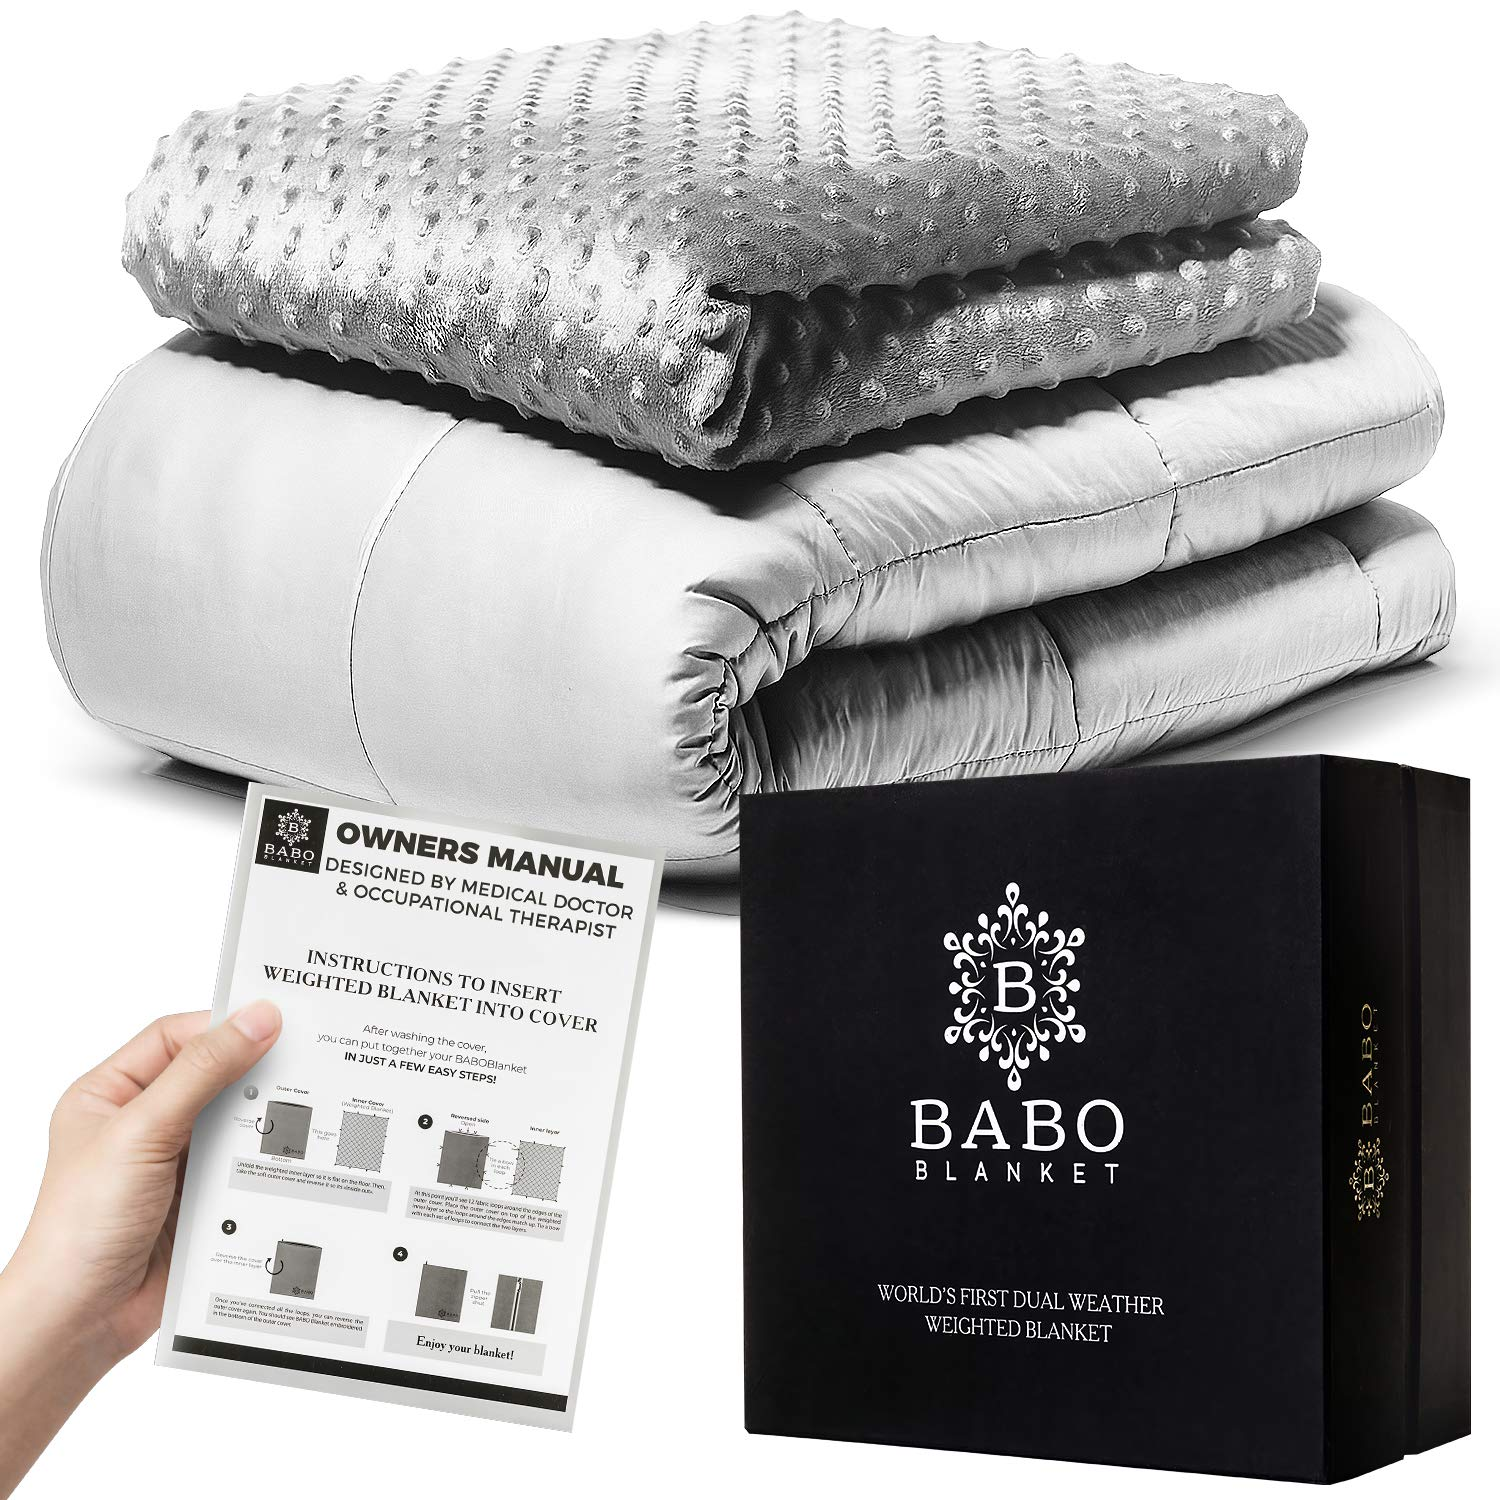 Mibio Cooling Weighted Blanket 15 lbs, 60x80 inch Queen Size, Cool Weighted Throw Anxiety Blanket, use as Heavy Blanket for Adults sleep blankets Sleep blankets review – benefits of sleeping with weighted blankets 81LHYHiKHhL